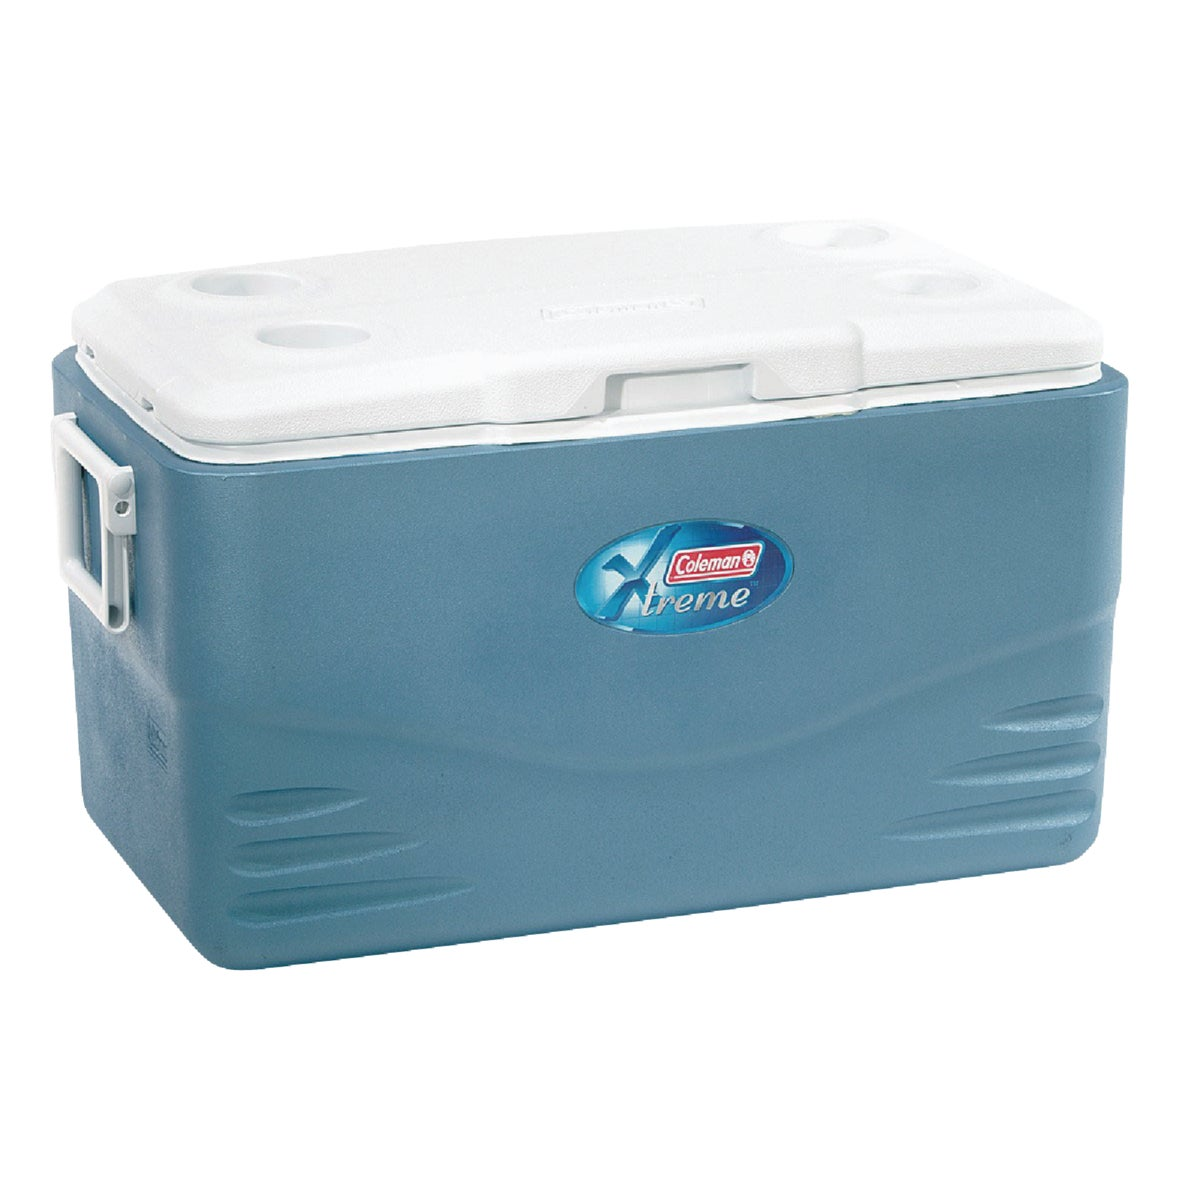 52QT BLUE/WHITE COOLER - 6050A748 by Coleman